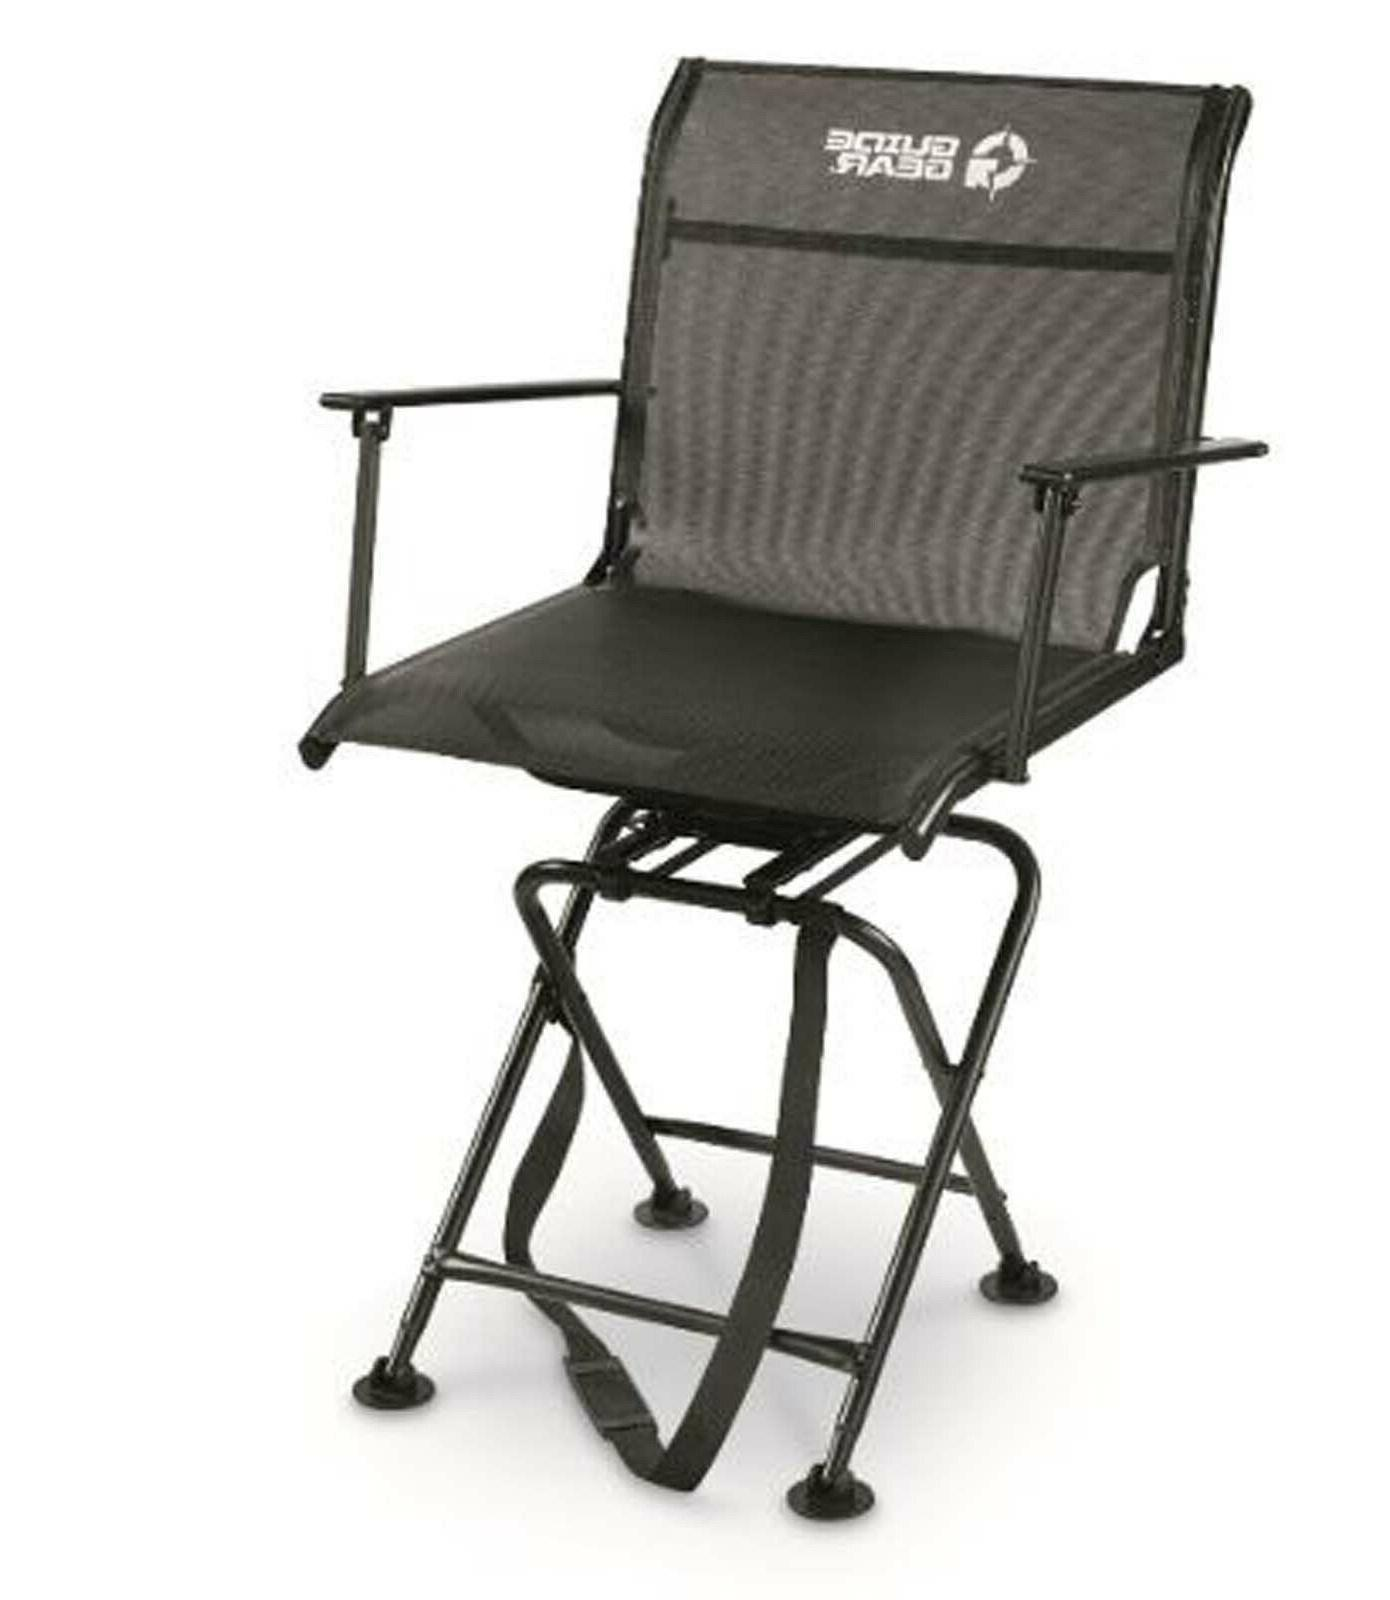 Guide Gear Big Boy Comfort Swivel Hunting Blind Chair Armres